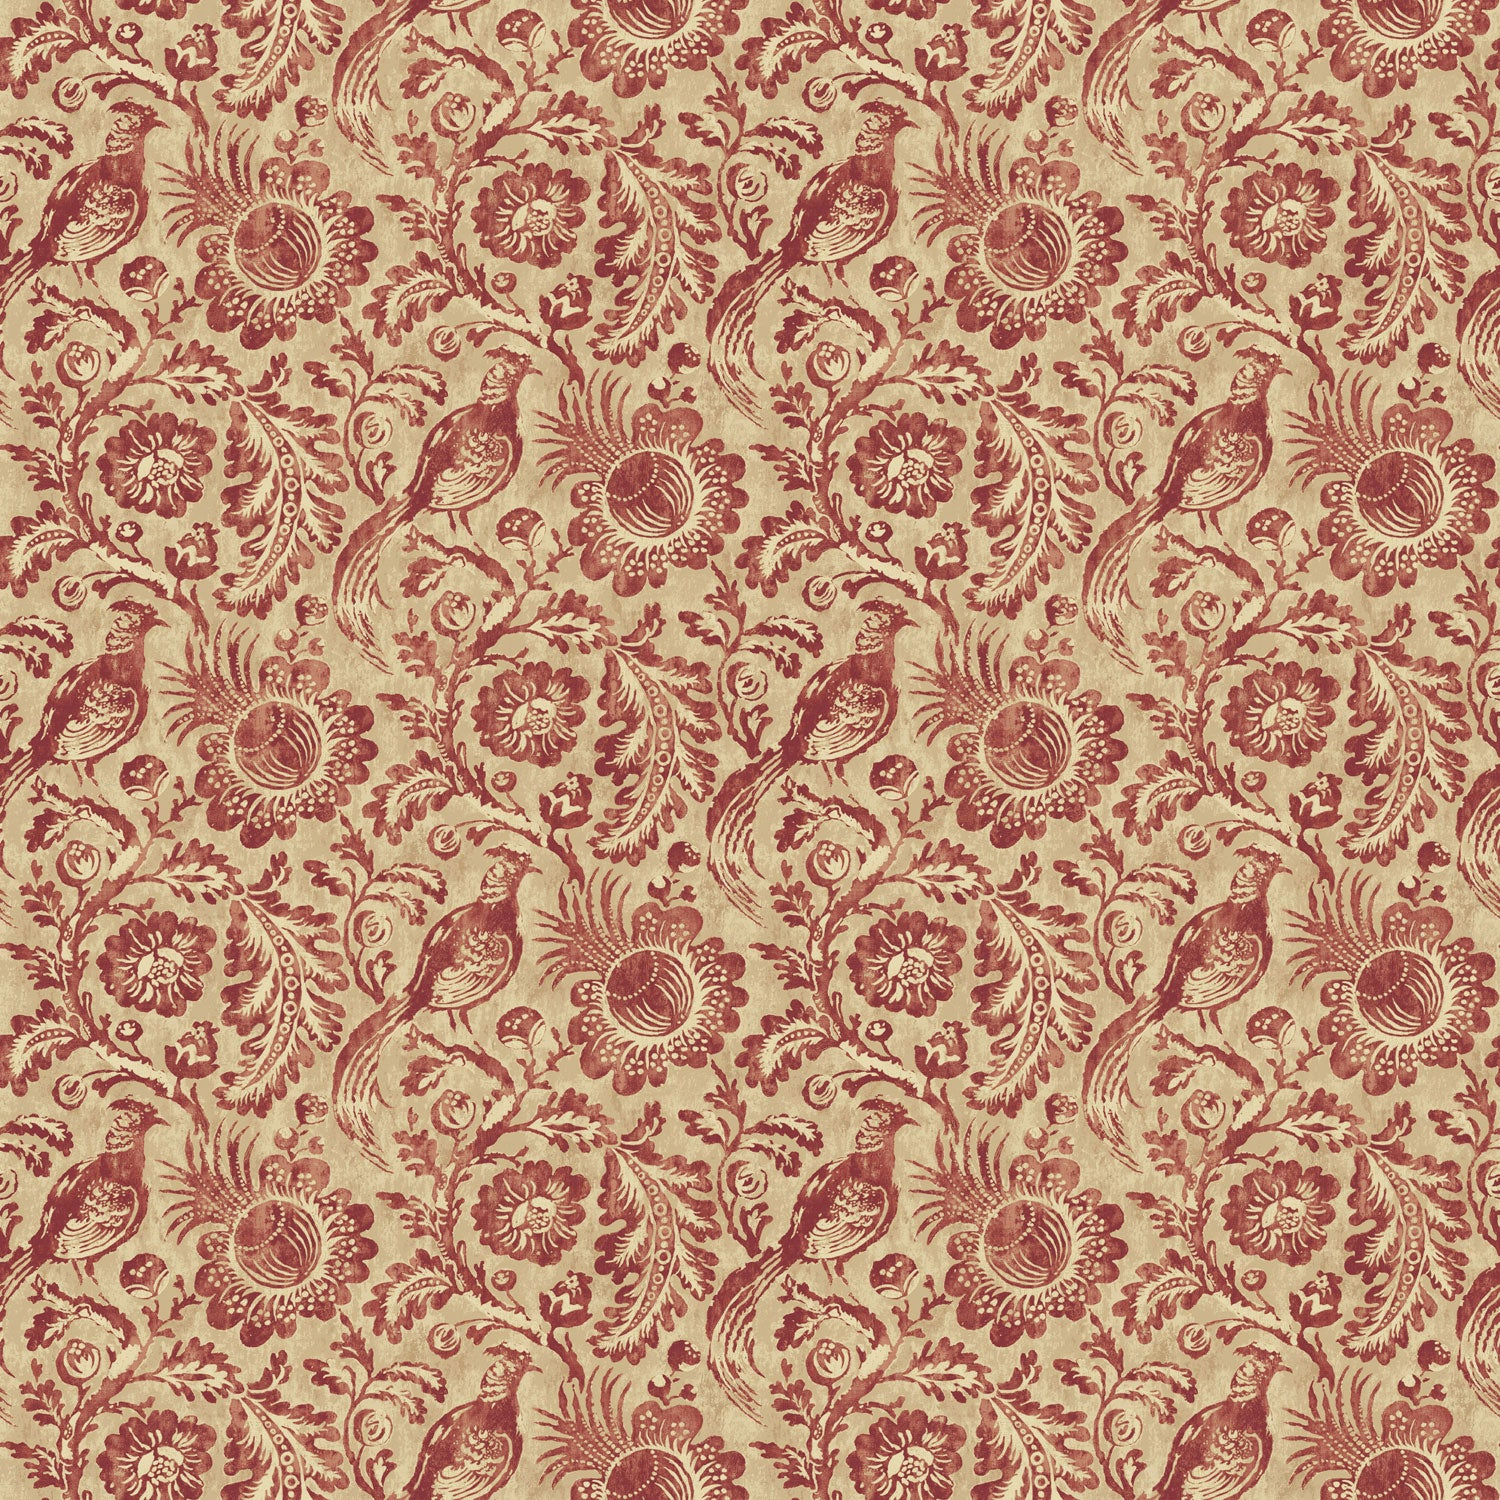 Wallpaper for walls with a berry coloured pheasant and floral design